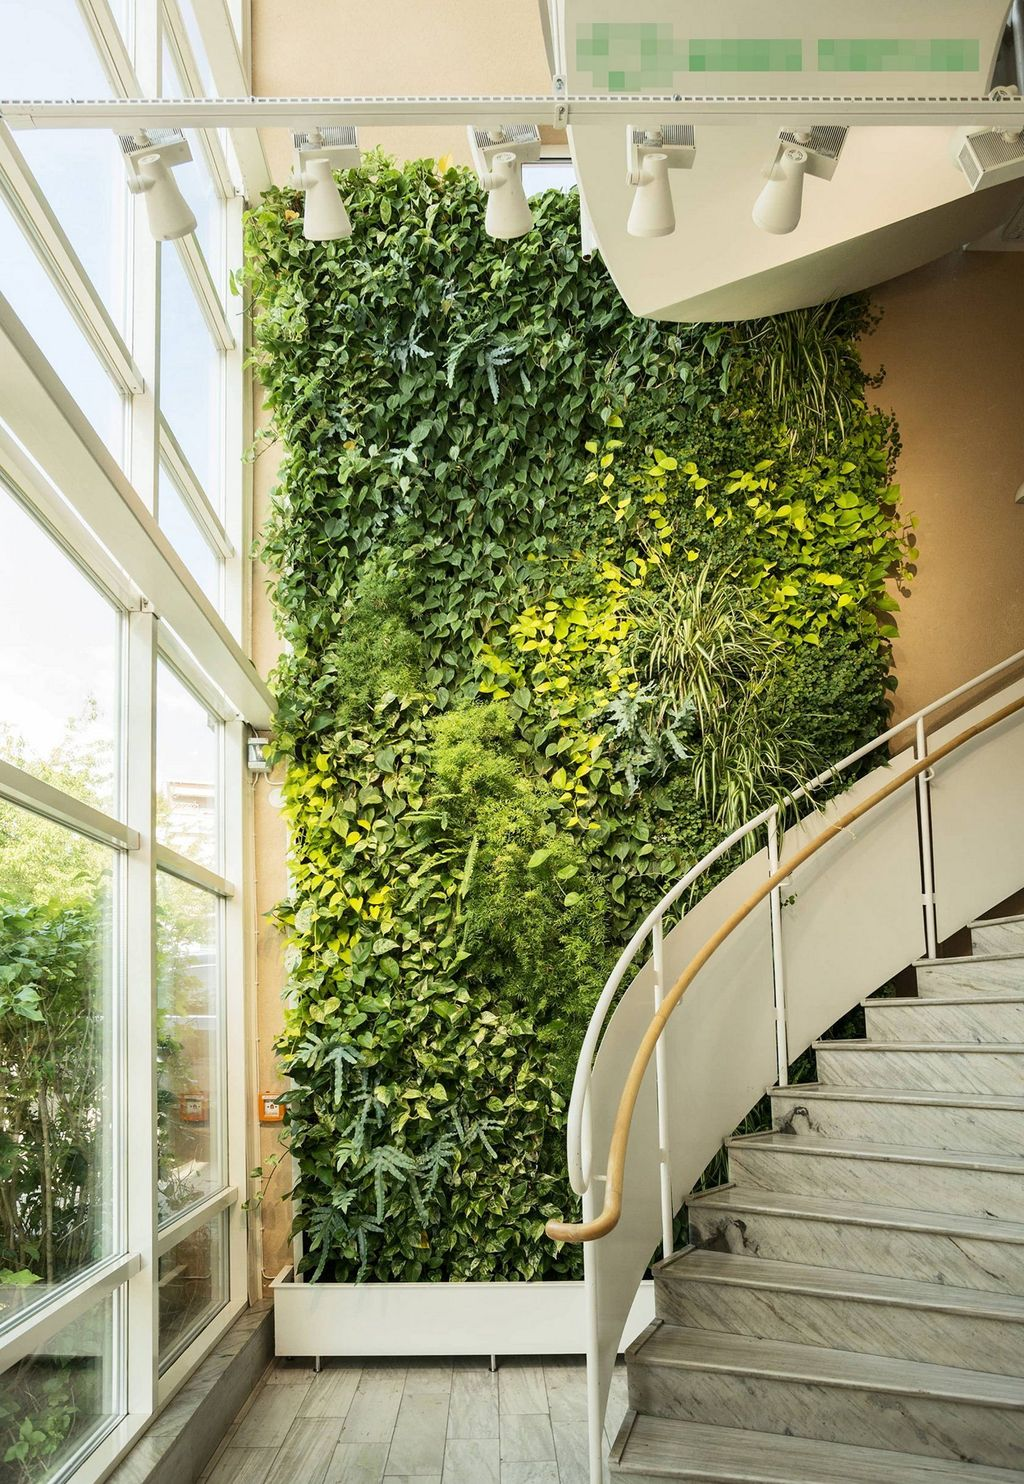 Amazing Living Wall Indoor Decoration Ideas 04